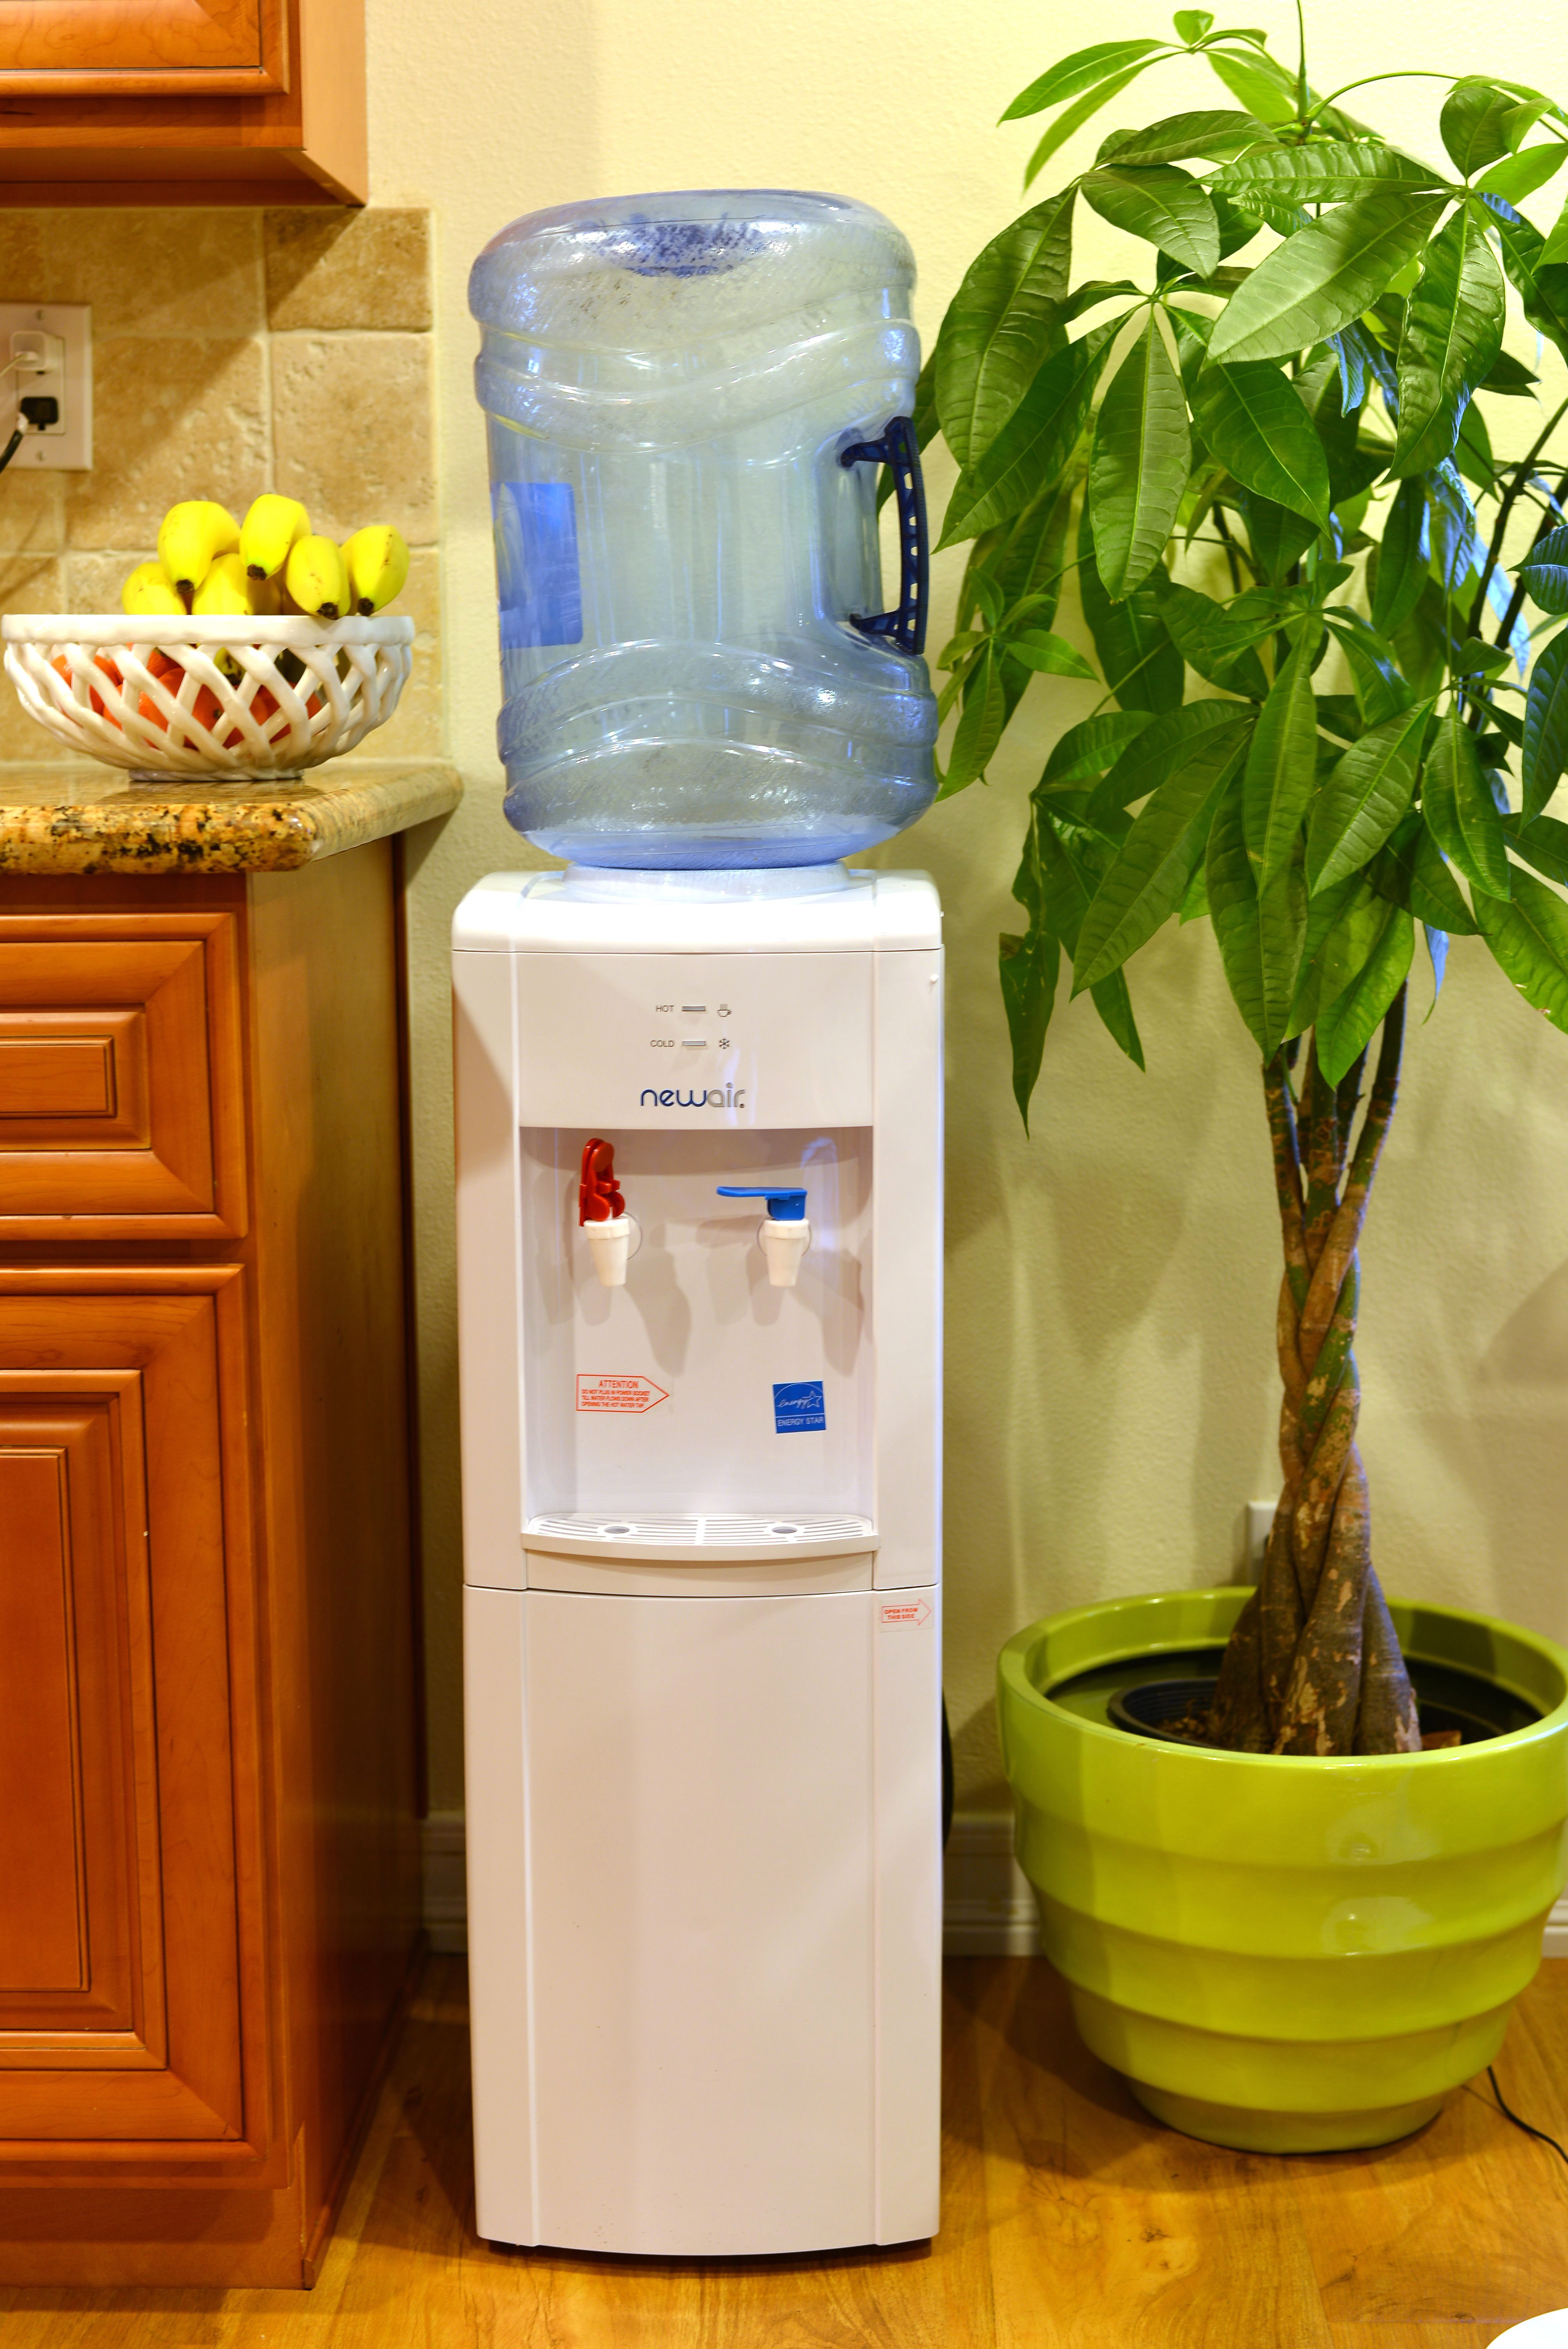 Newair Has Once Again Managed To Create Another Must Have Water Dispenser Http Www Newair Com Products Wcd 200w Water Dispenser Water Coolers Cold Water